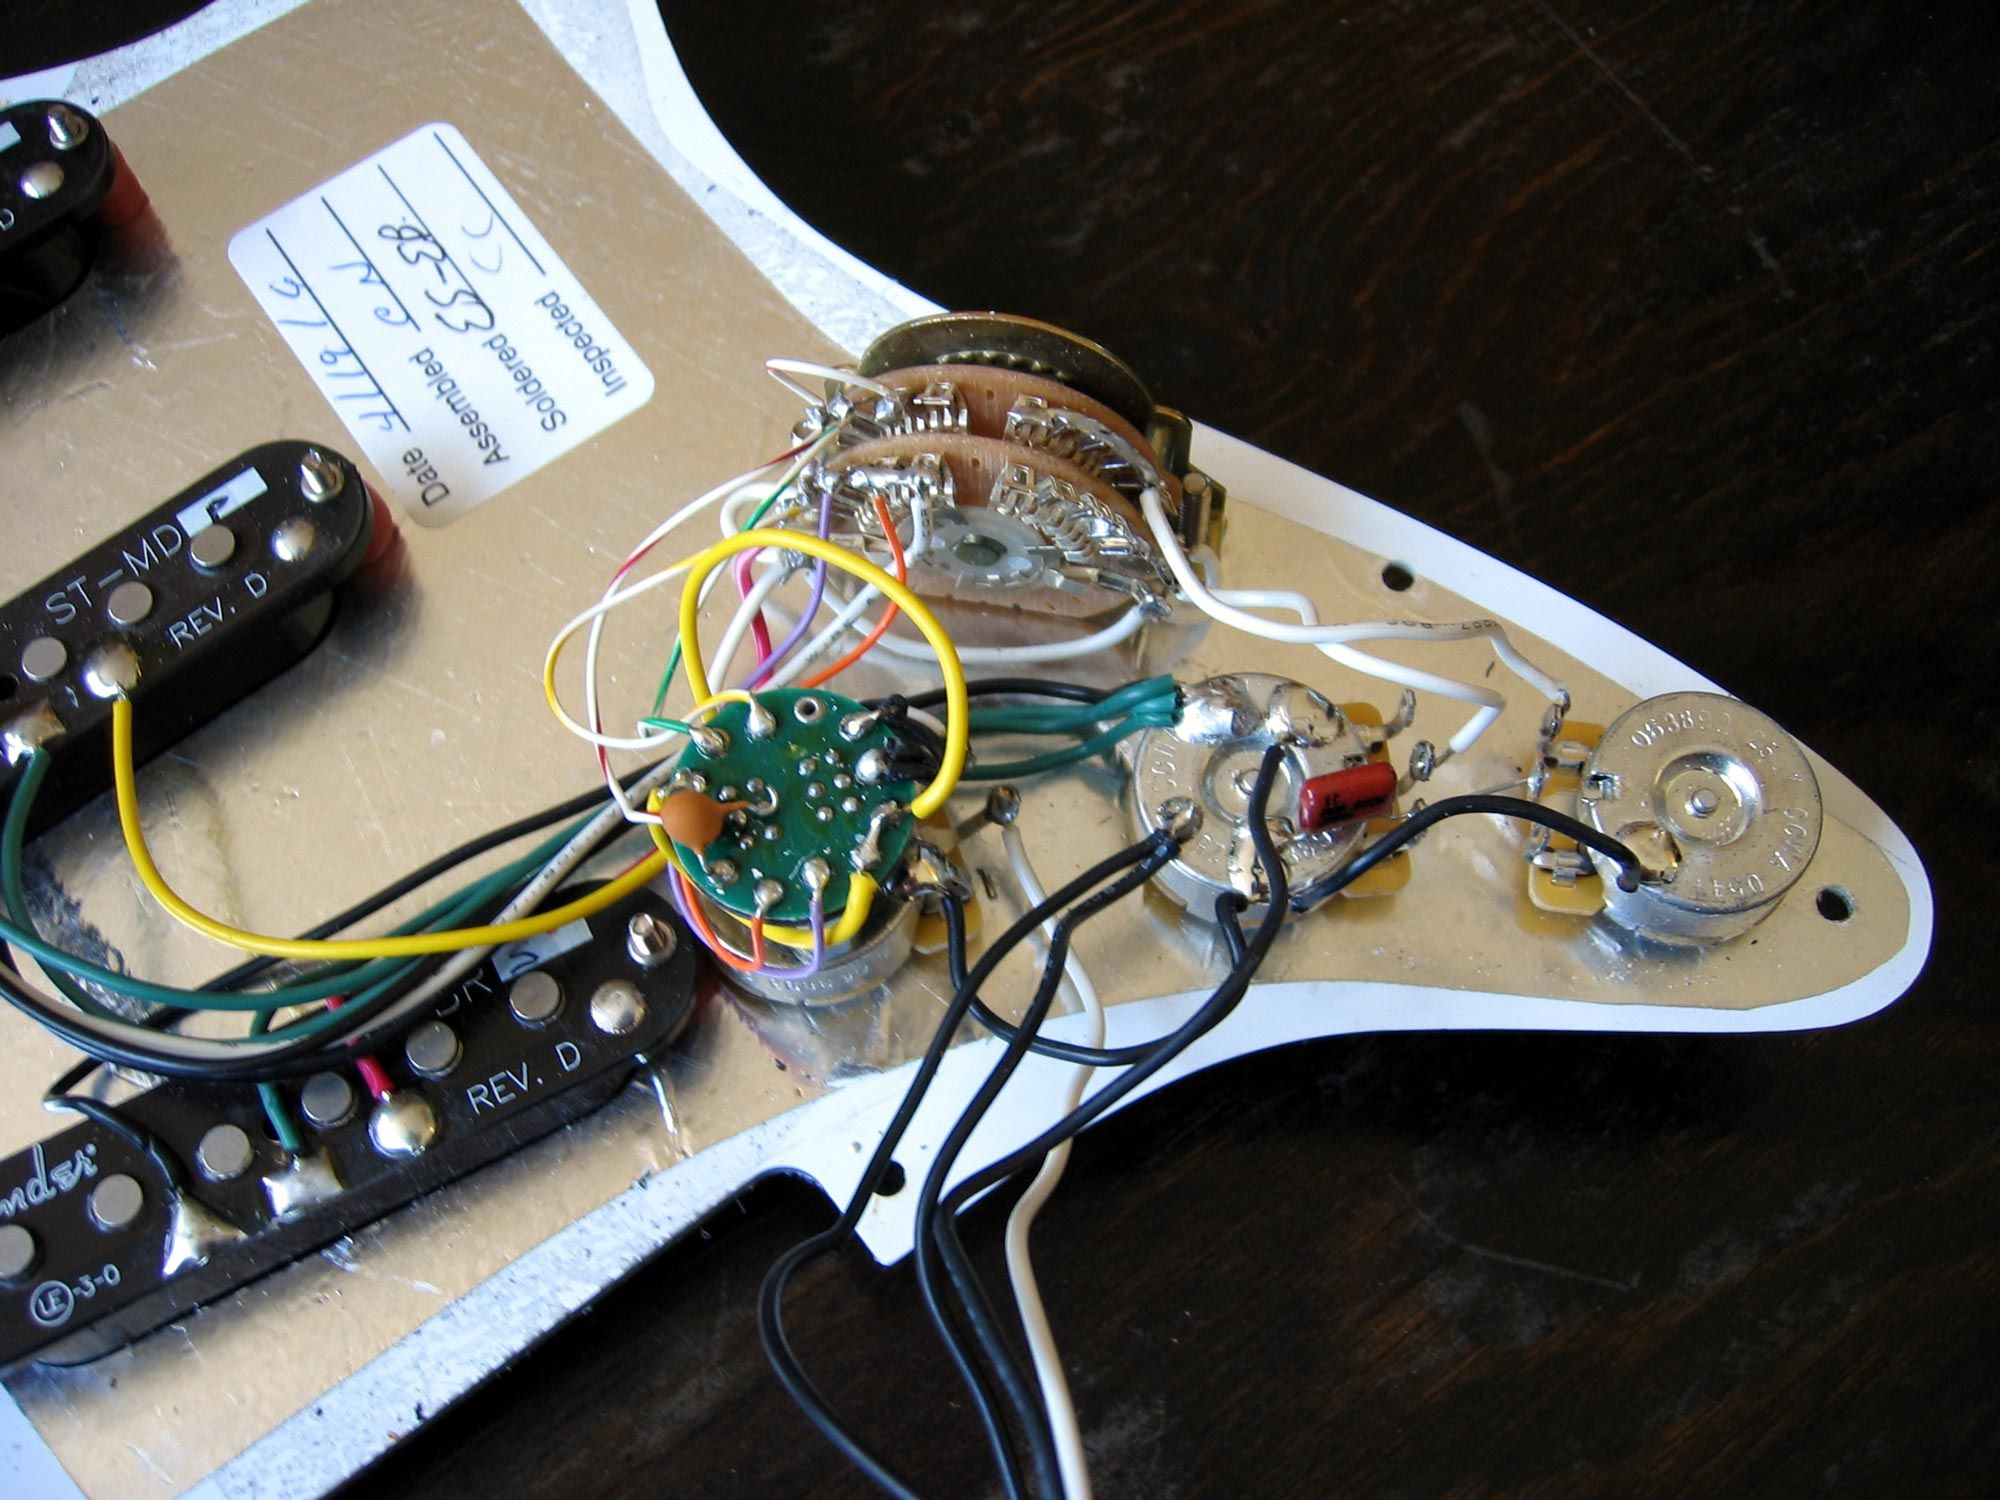 79ddfe4e3d621a882a9c179d6ff6fcac wiring diagram for a 1982 smith strat?? fender stratocaster  at readyjetset.co